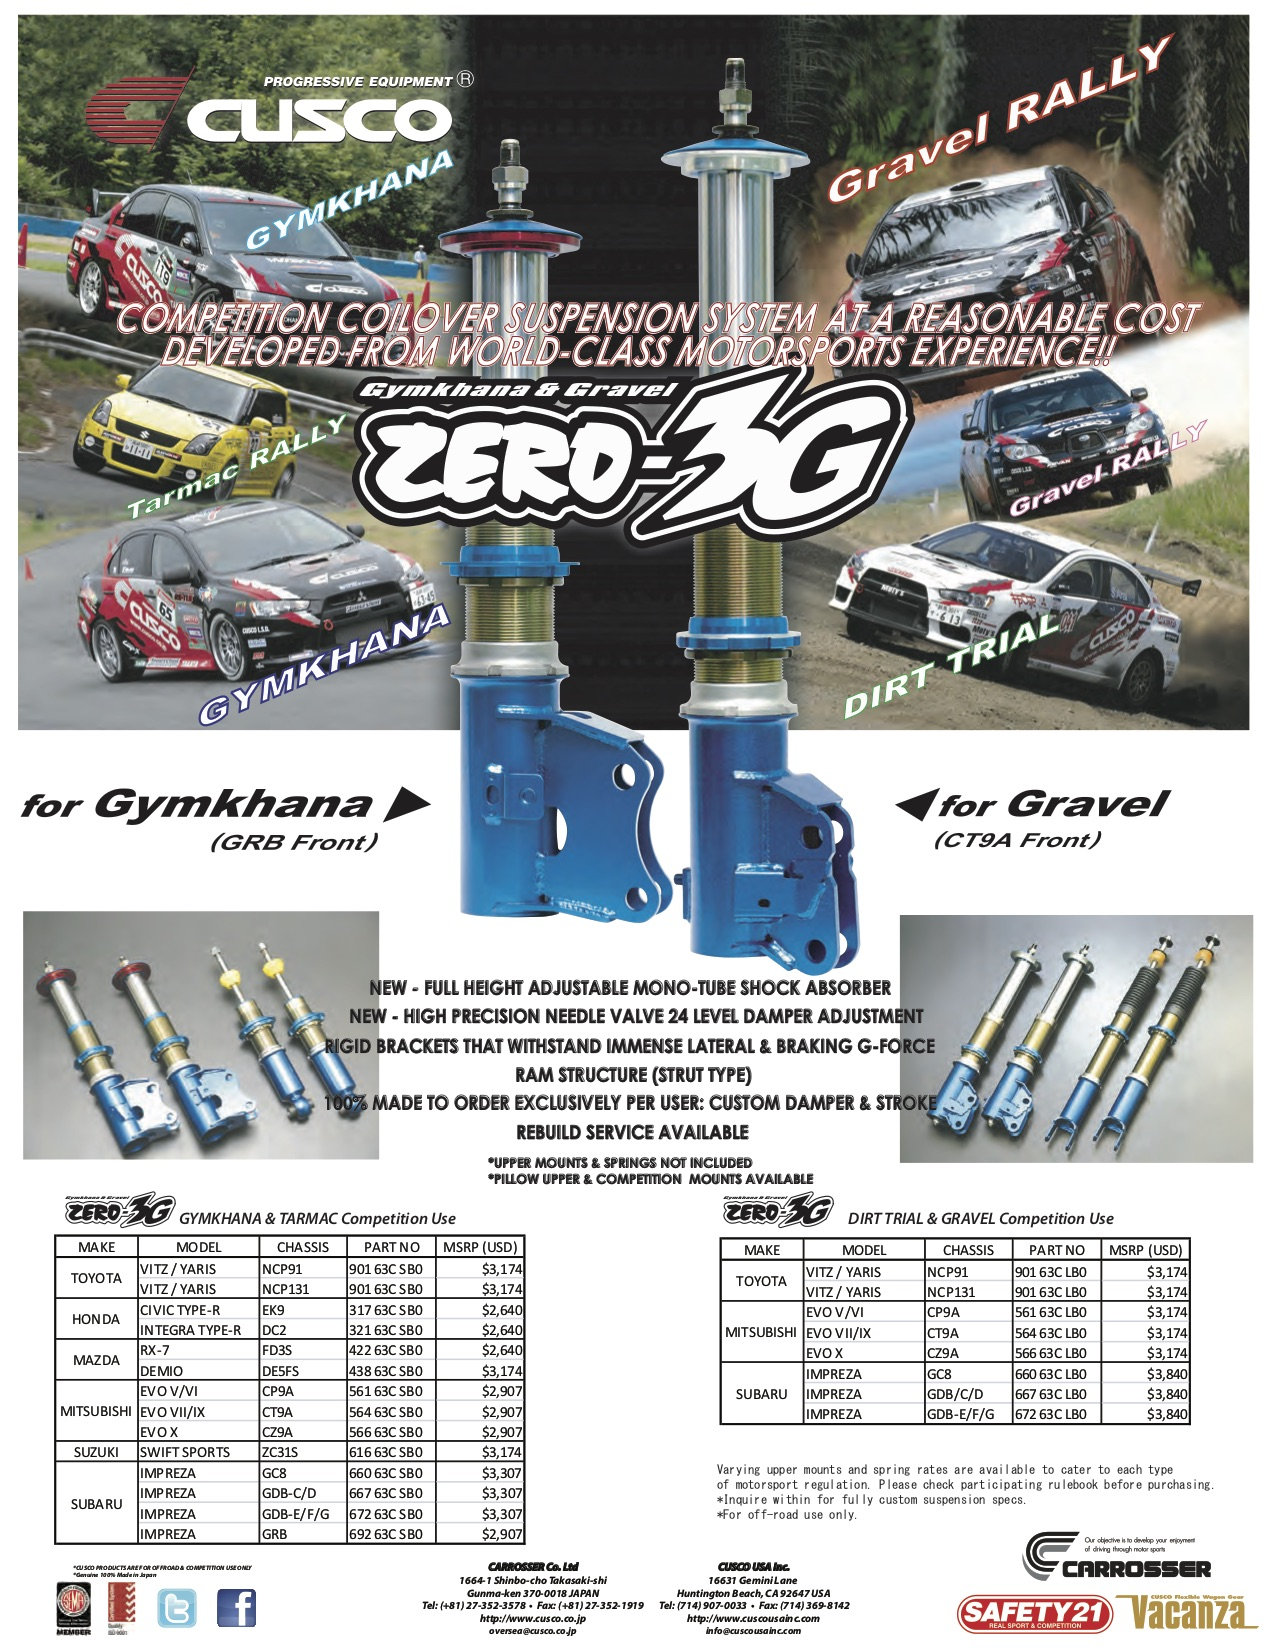 coilover-kit-competition-zero-3g-series.jpg